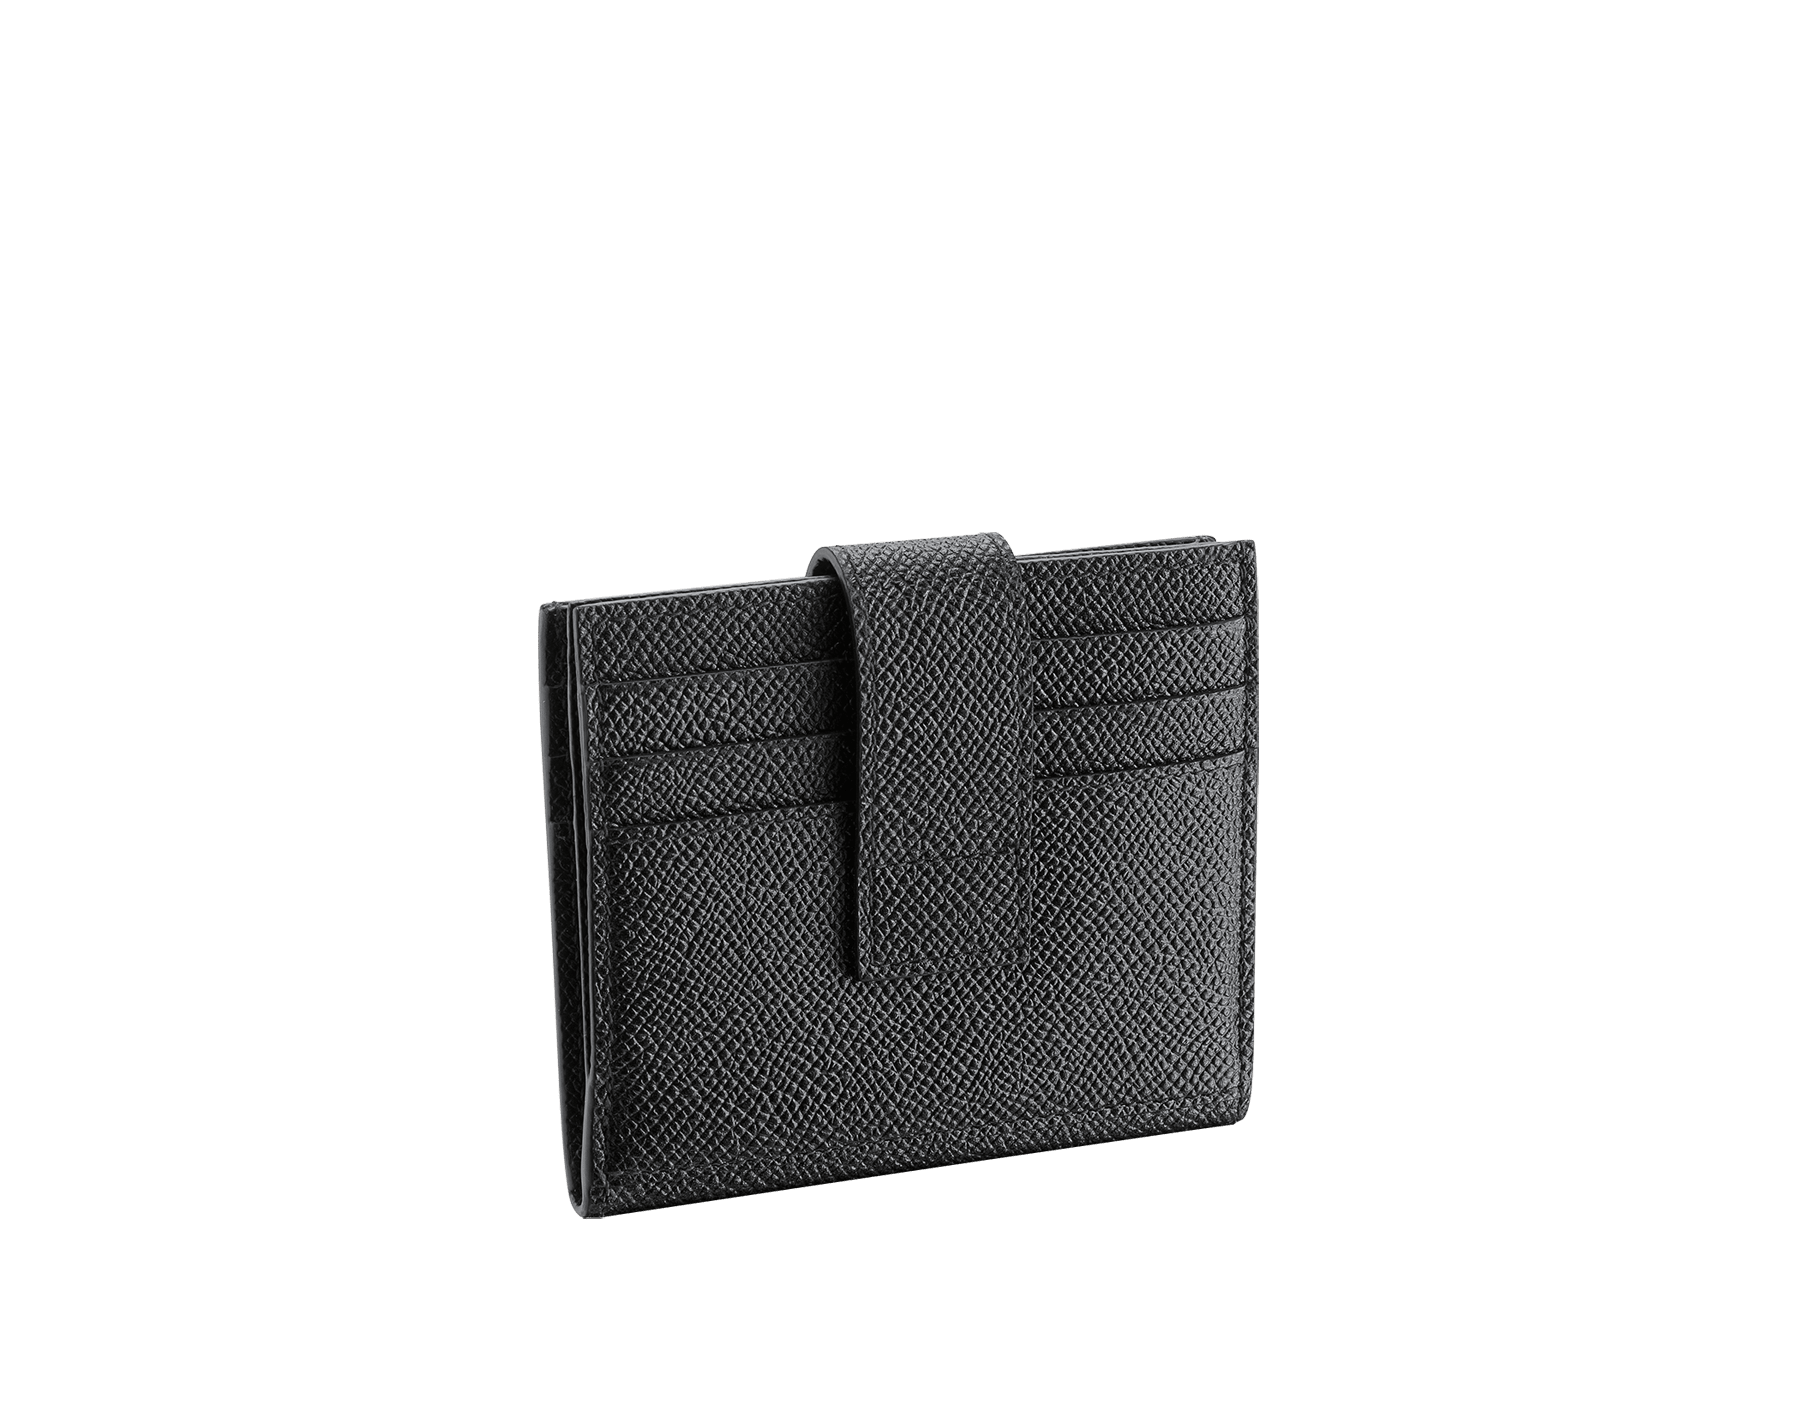 BVLGARI BVLGARI folded credit card holder in black grain calf leather. Iconic logo décor in palladium plated brass. 289232 image 3